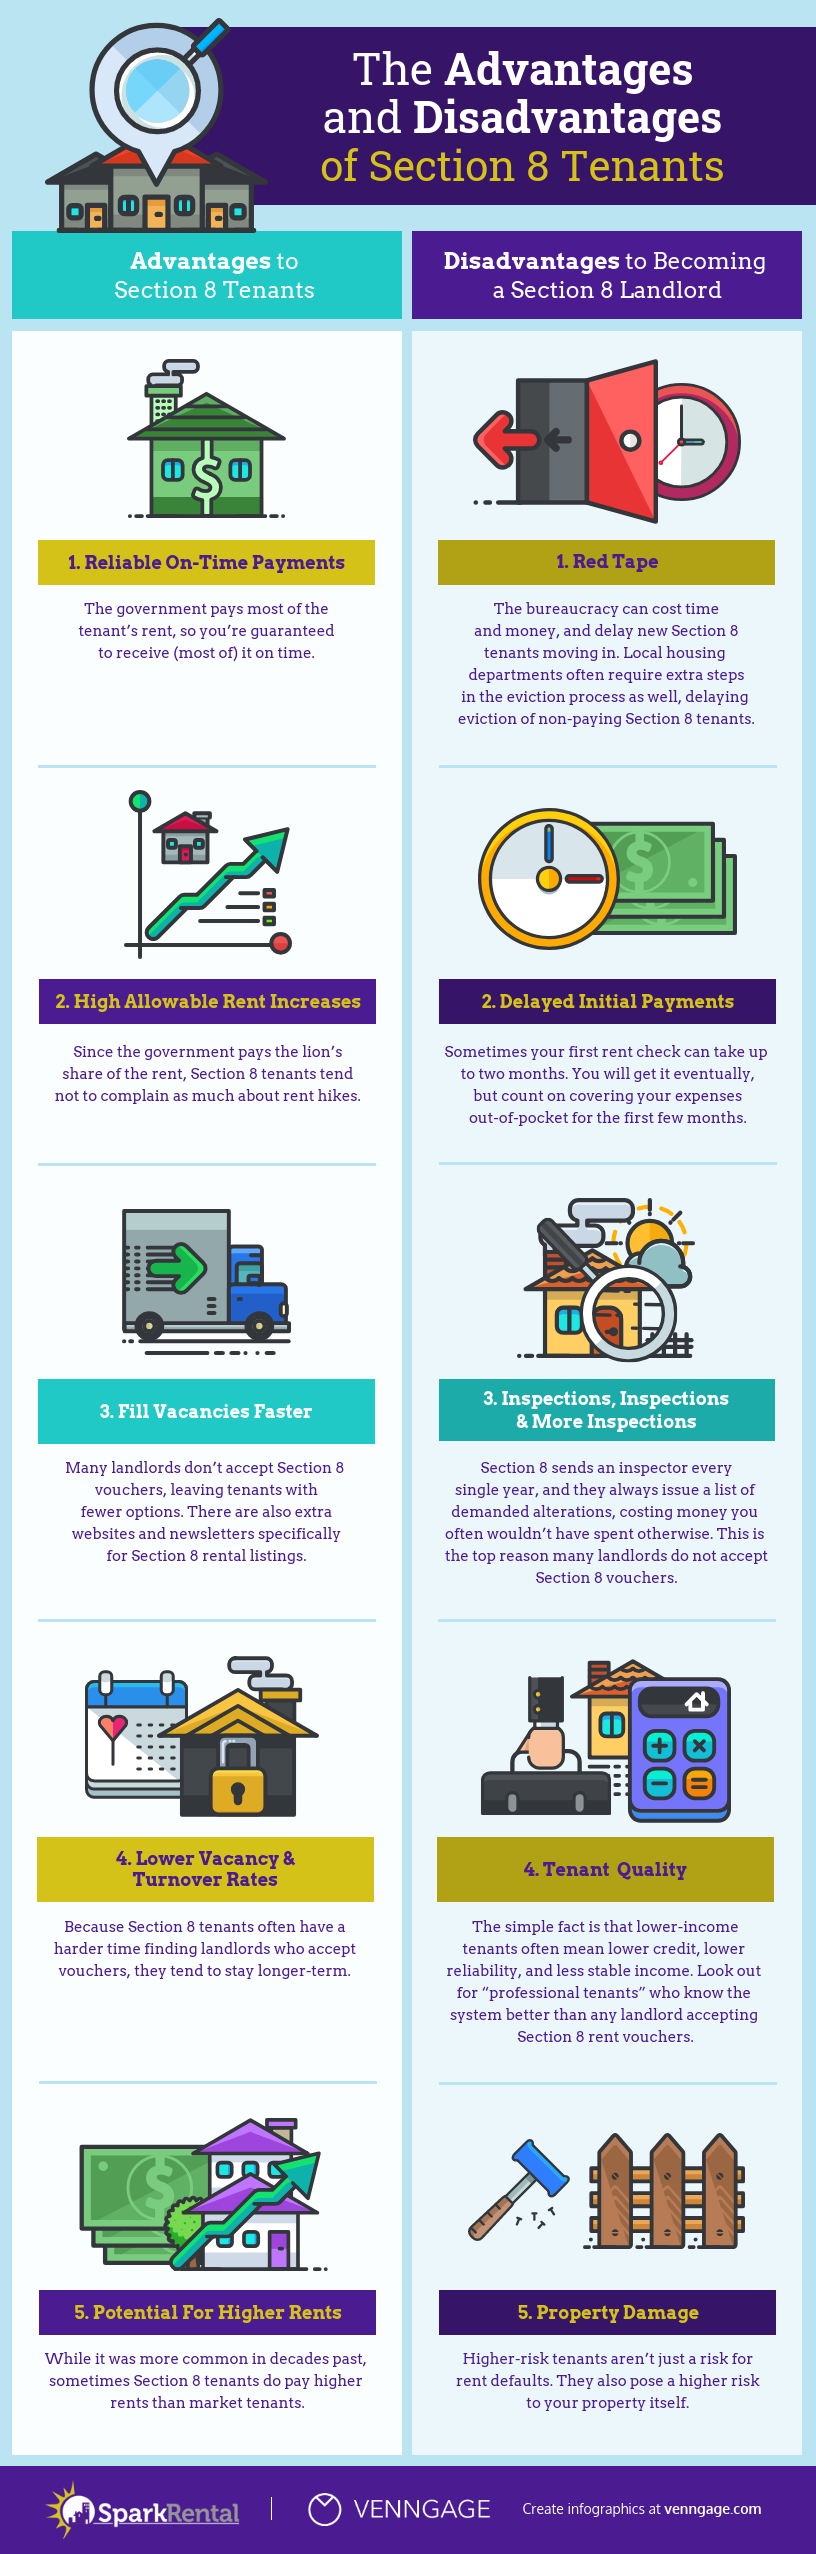 Email Marketing Infographic Section 8 Tenants Ad Pros Cons